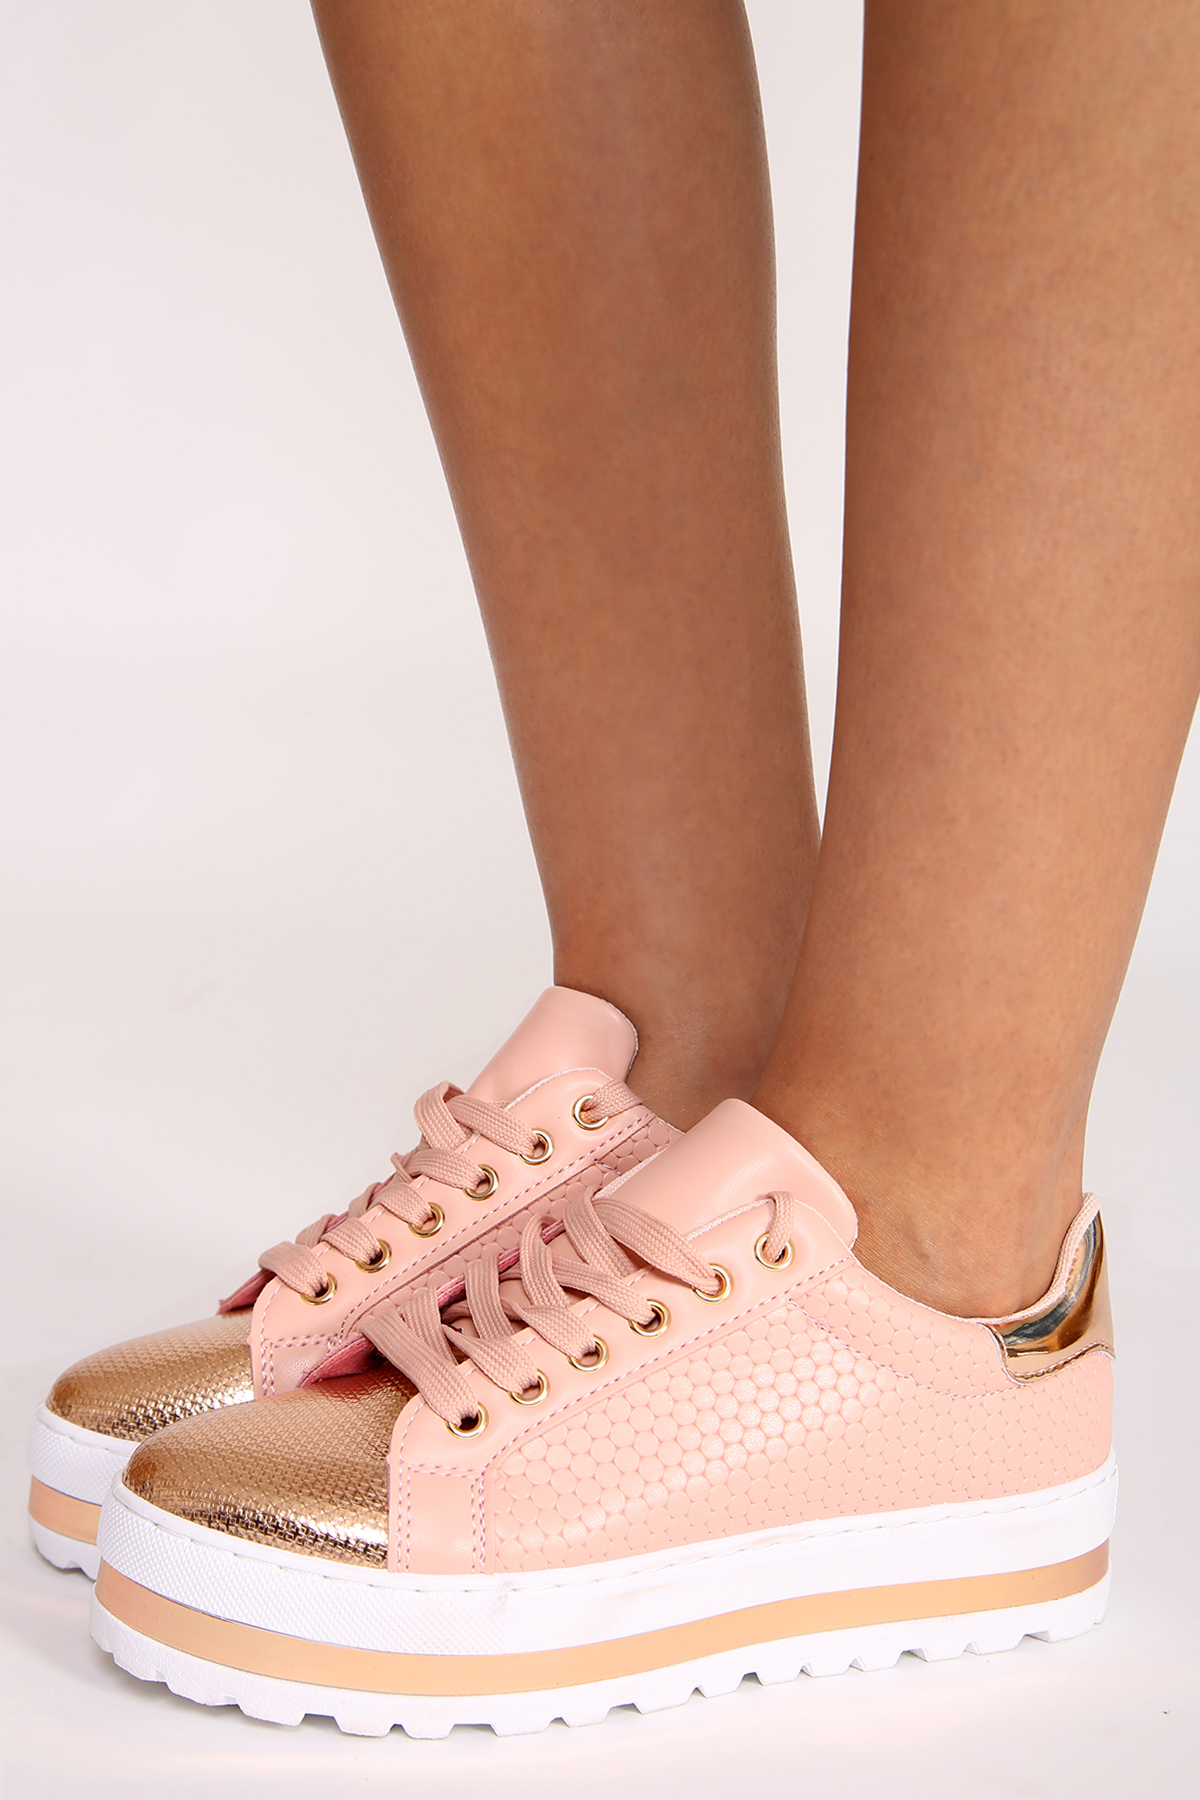 95cd30d63dce LULA LUXE METALLIC FLATFORM TRAINERS - PINK   ROSE GOLD - Shelikes